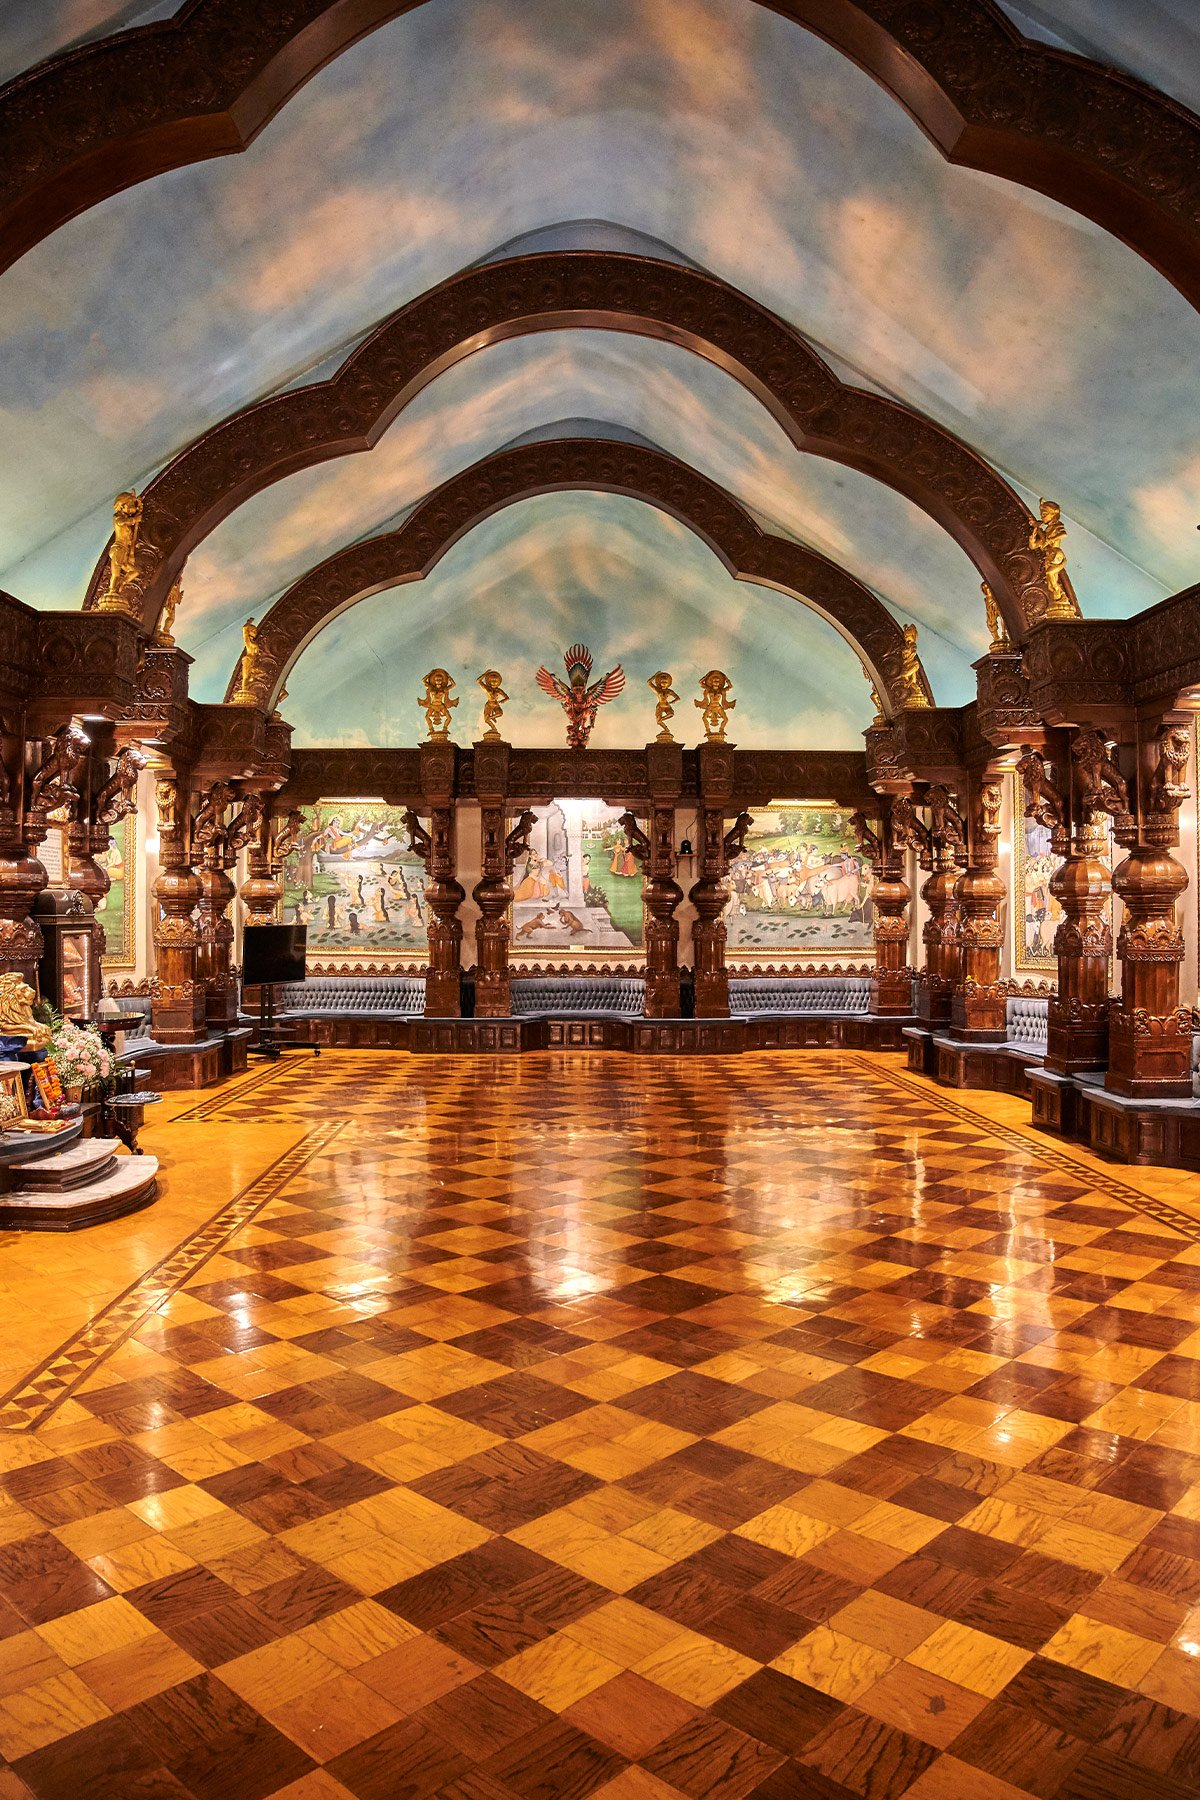 Sanctuary With Paintings Depicting Krishna's Life